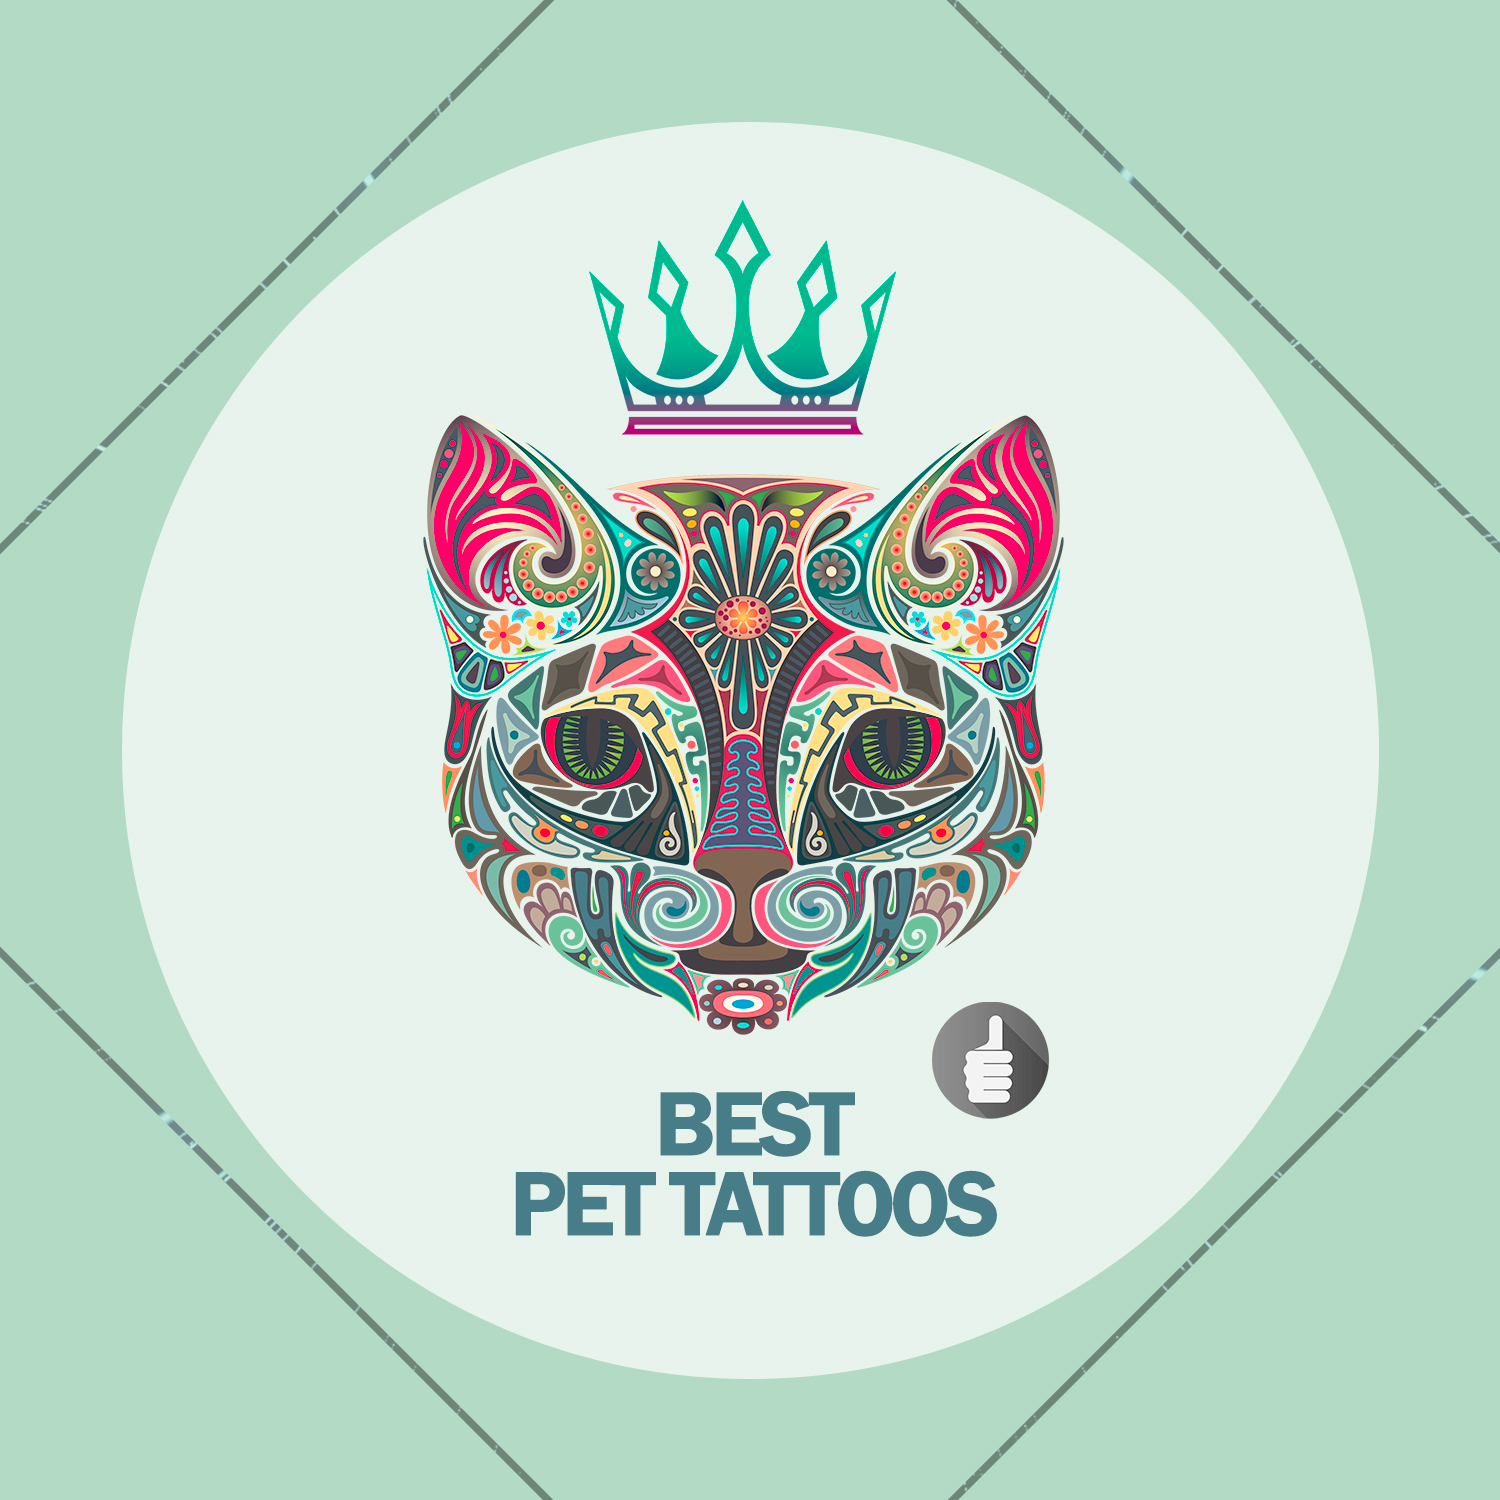 Best Pet Tattoos June 2019 | Electrum Supply